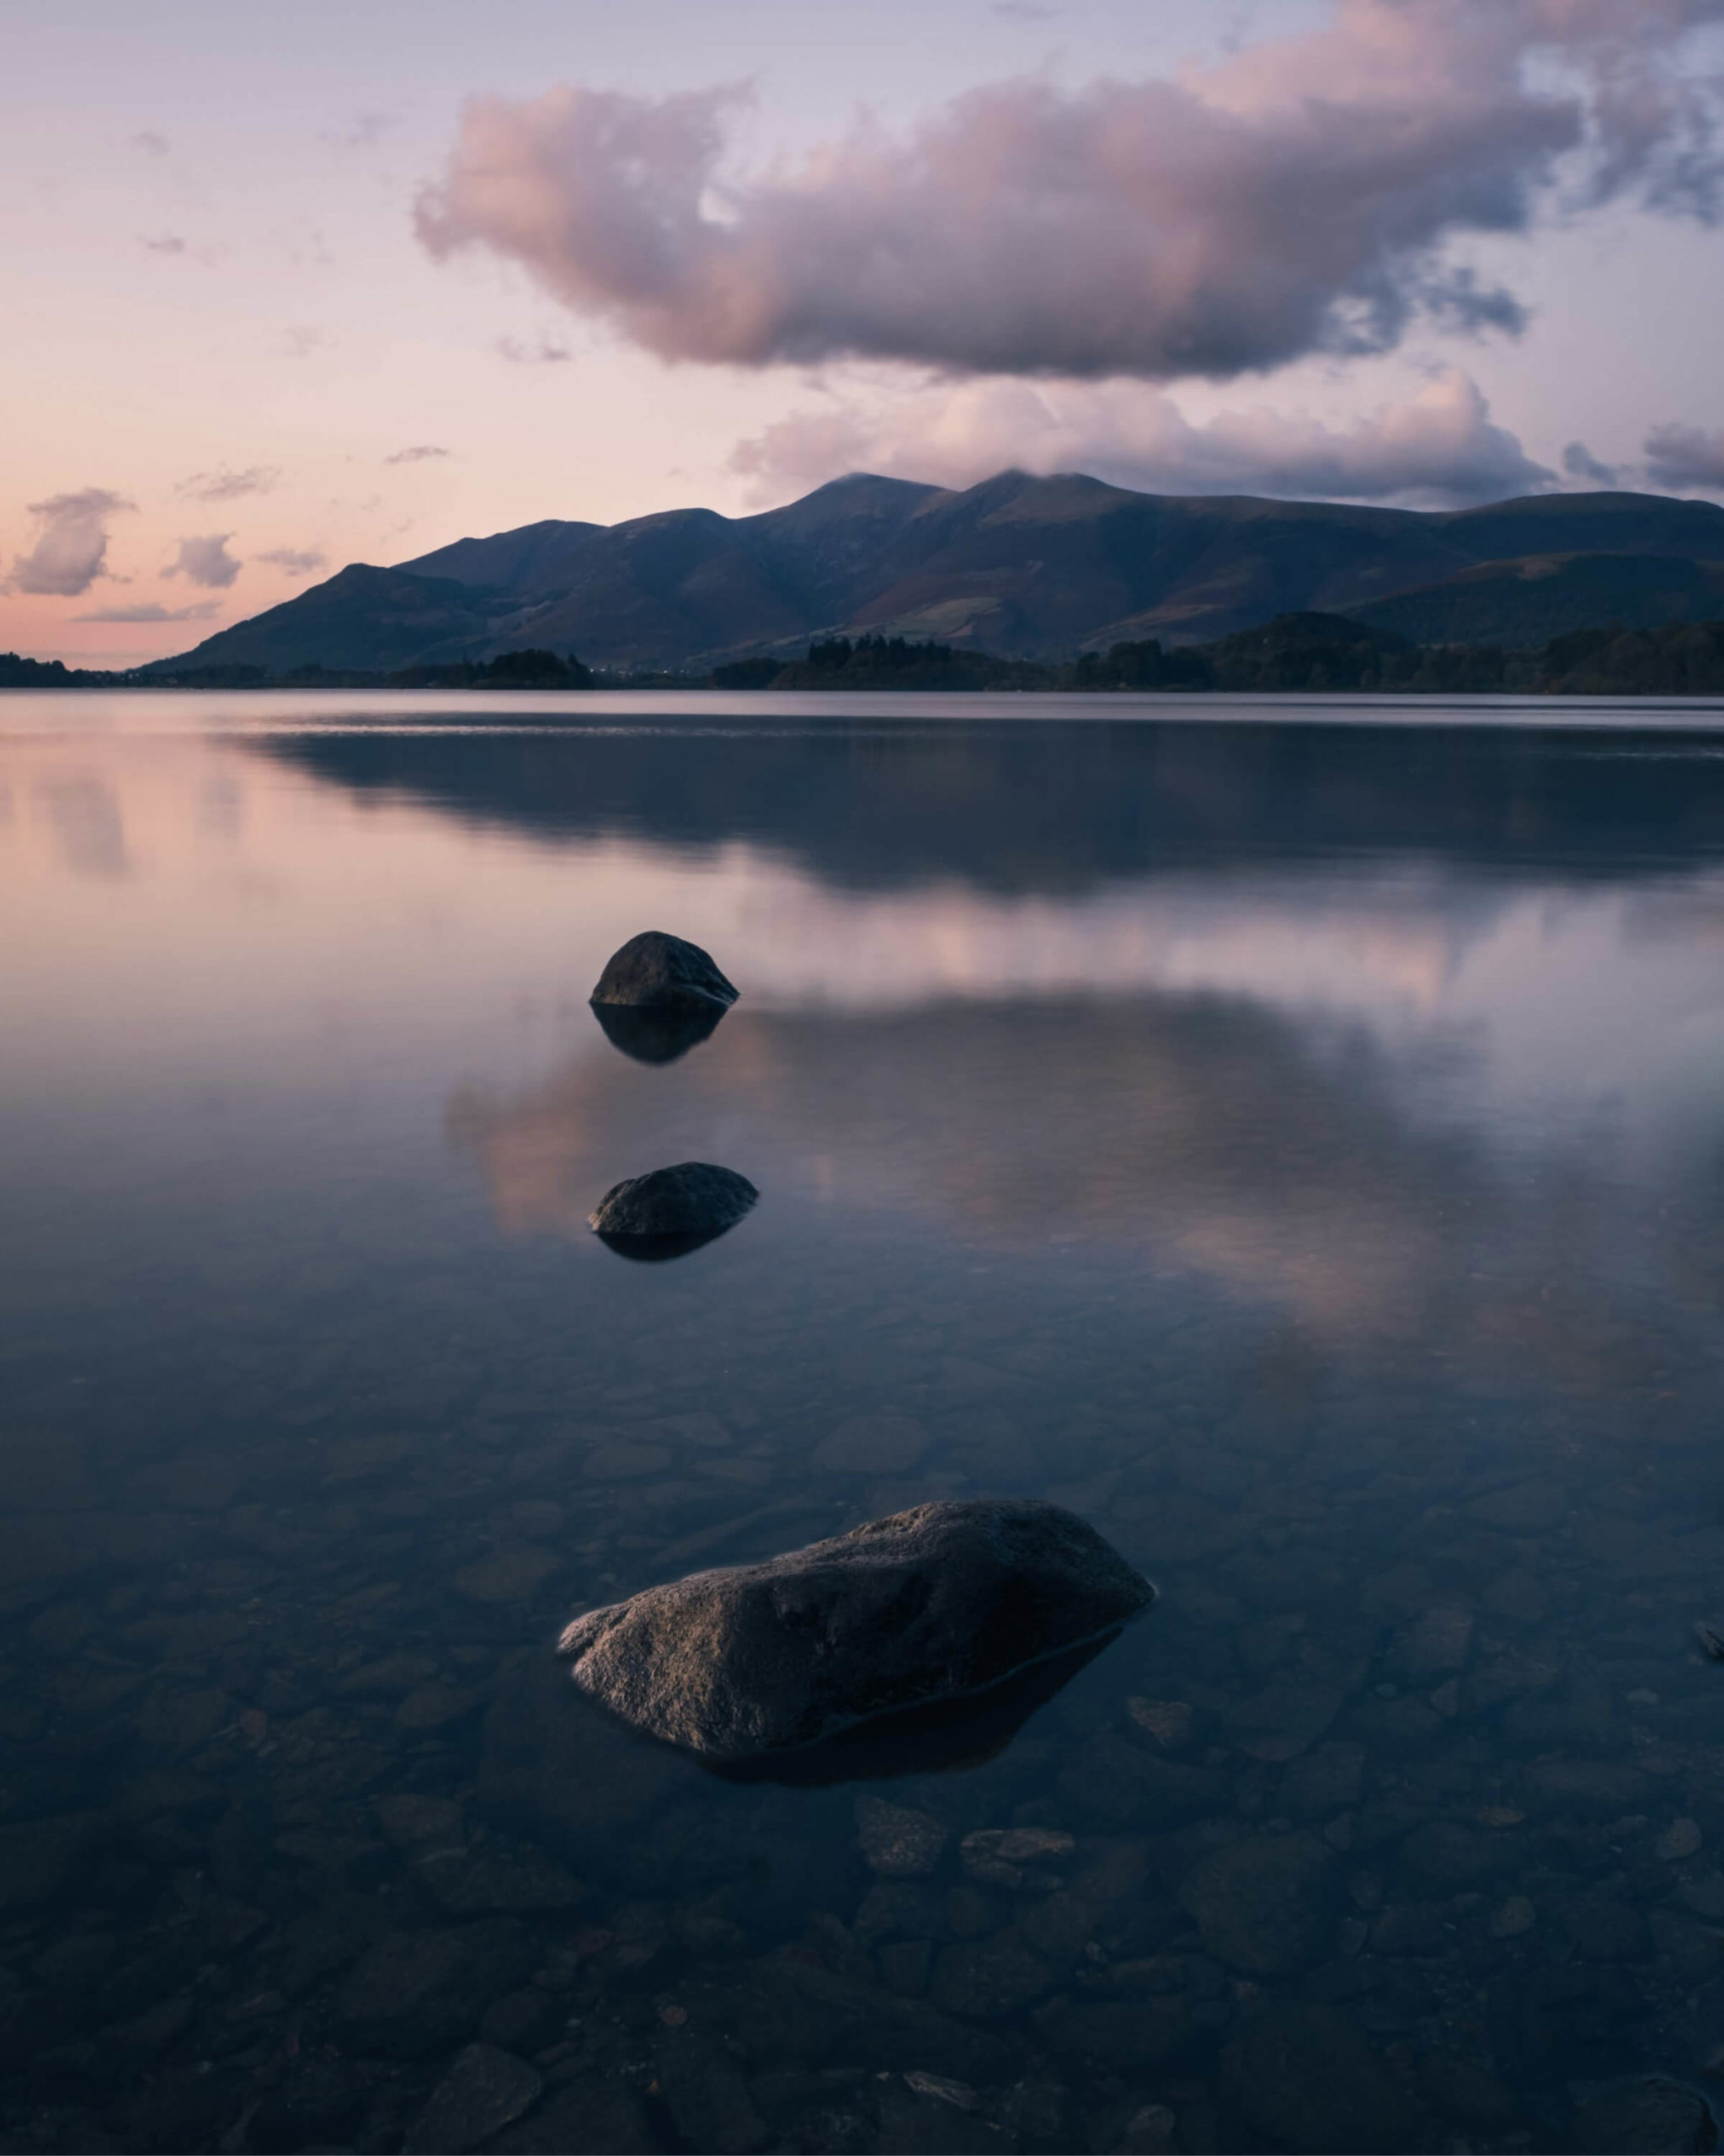 As the sun sets over a calm, still lake, pink fluffy clouds hover above a looming mountain range with three prominent peaks. An arrangement of three pebbles look like stepping stones on the water's surface.